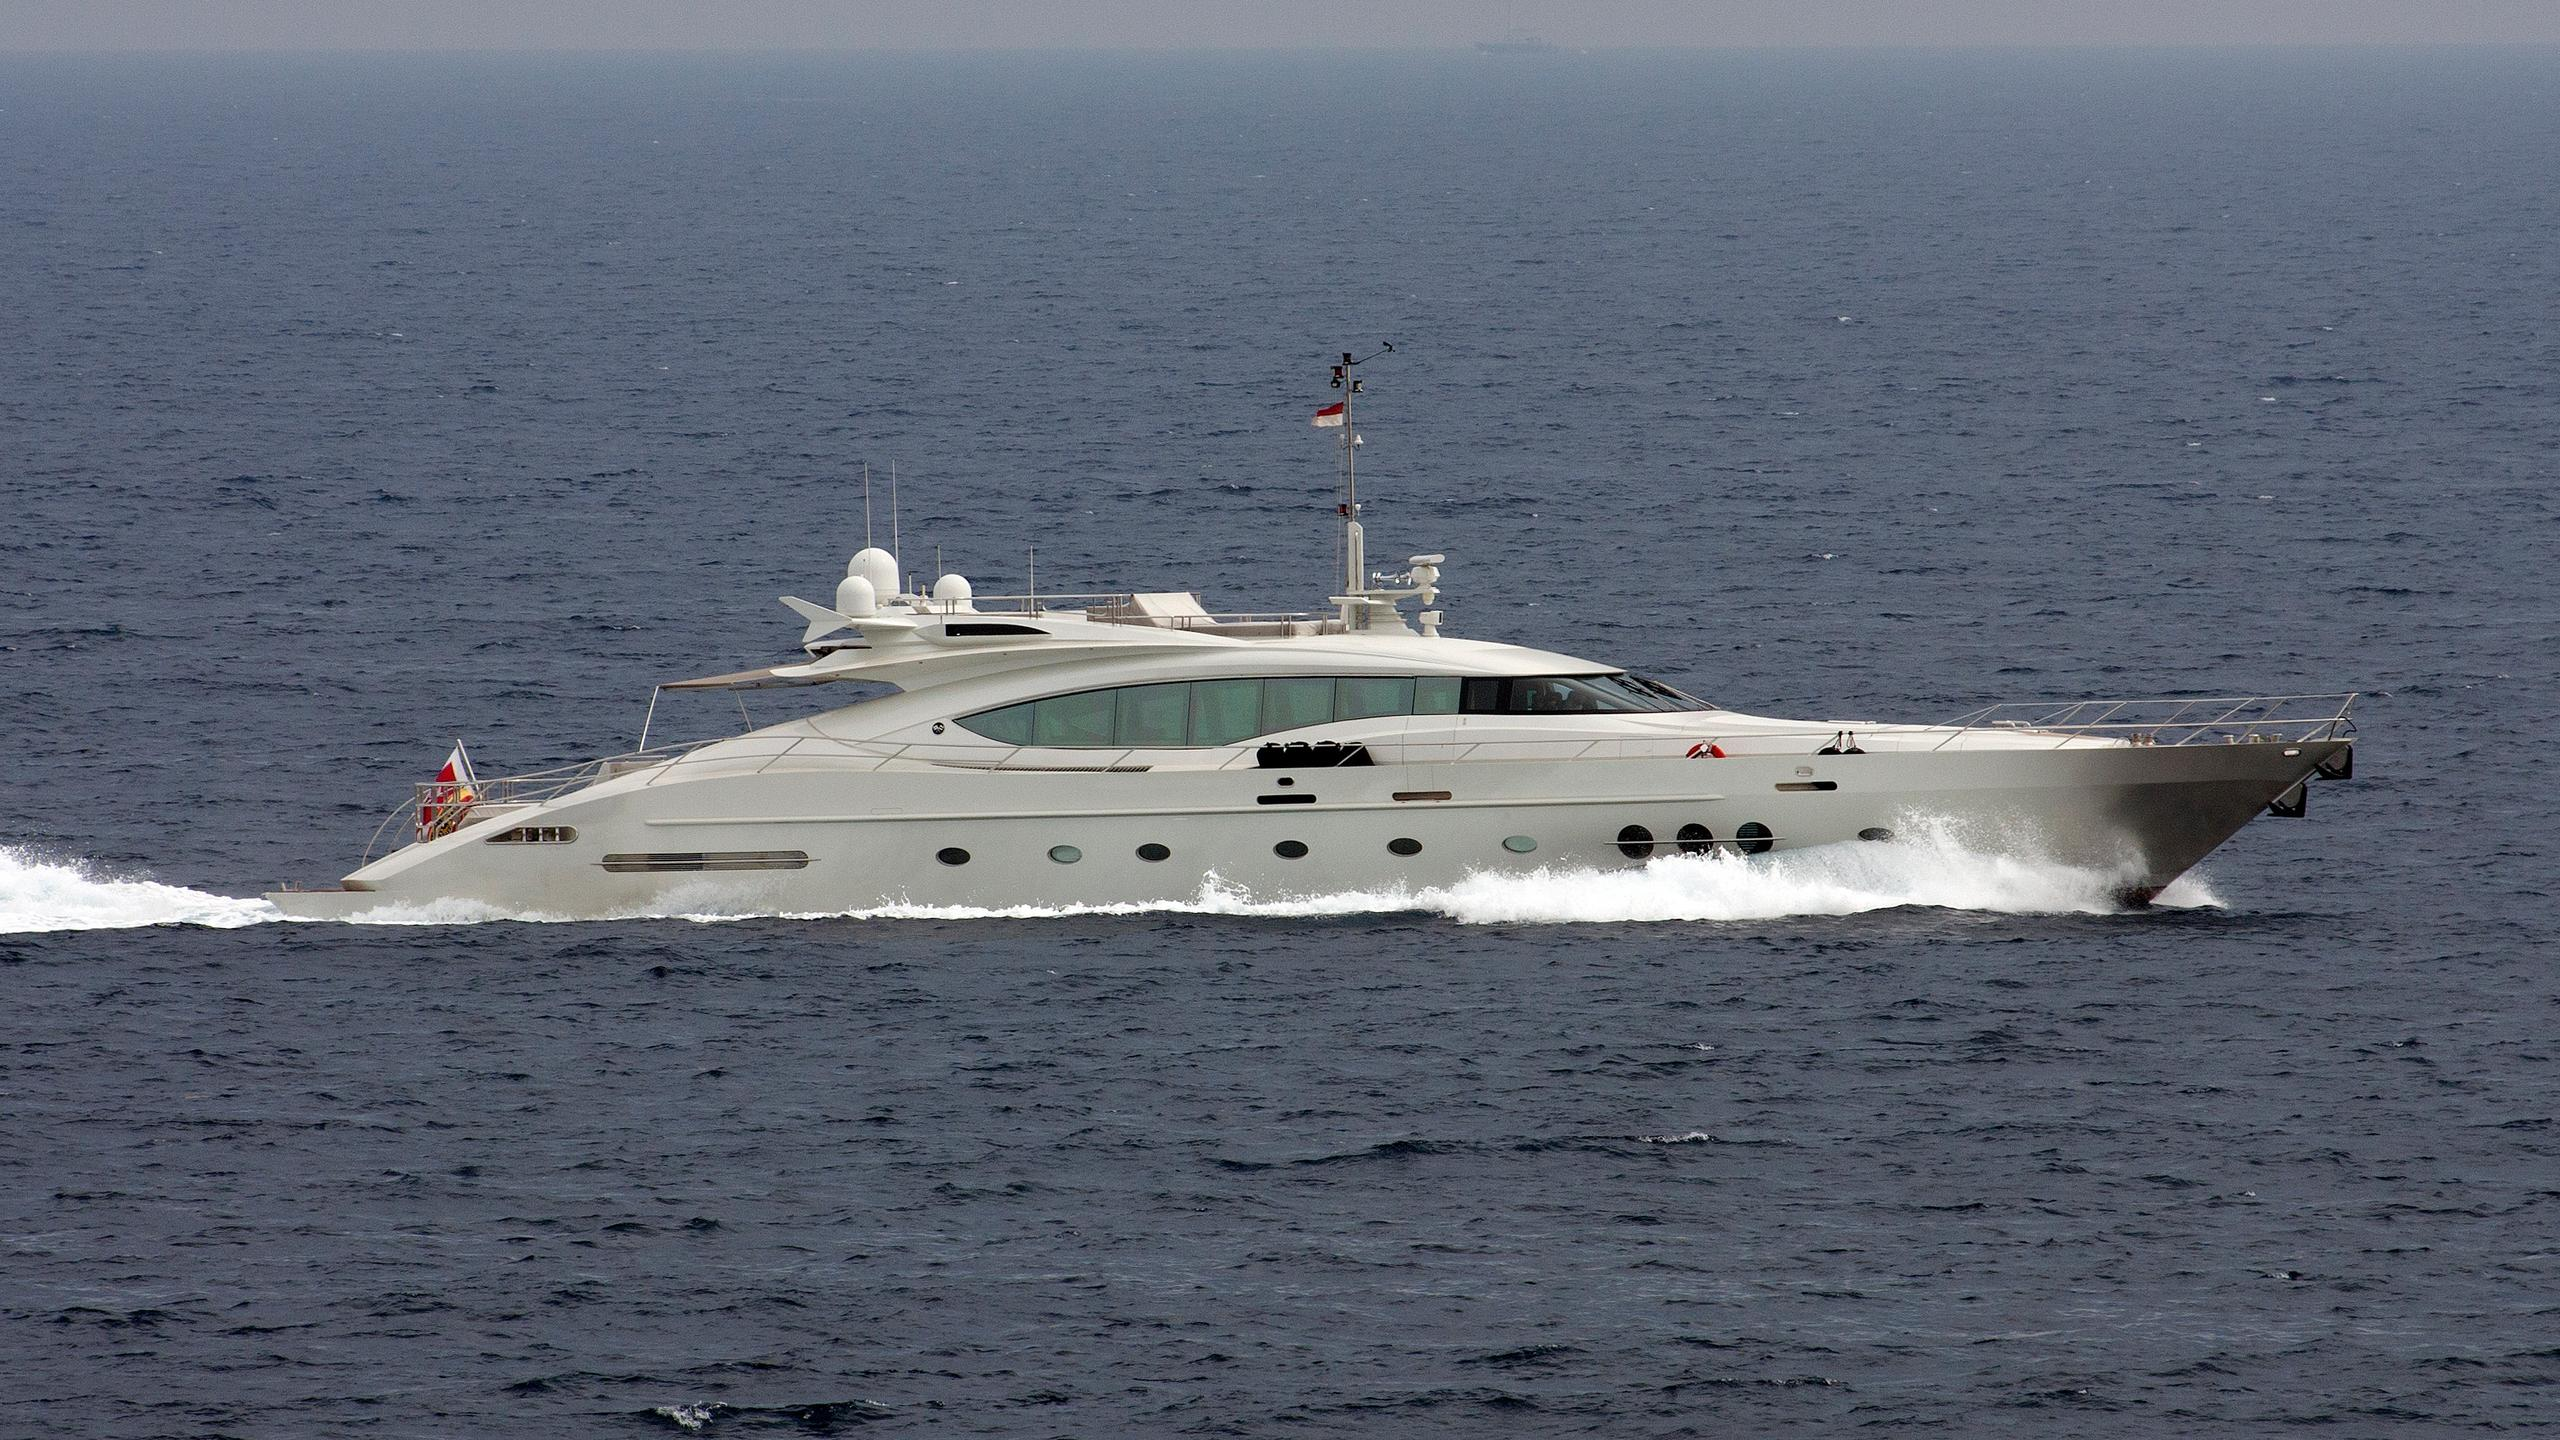 escape-ii-motor-yacht-palmer-johnson-120-2005-37m-cruising-profile